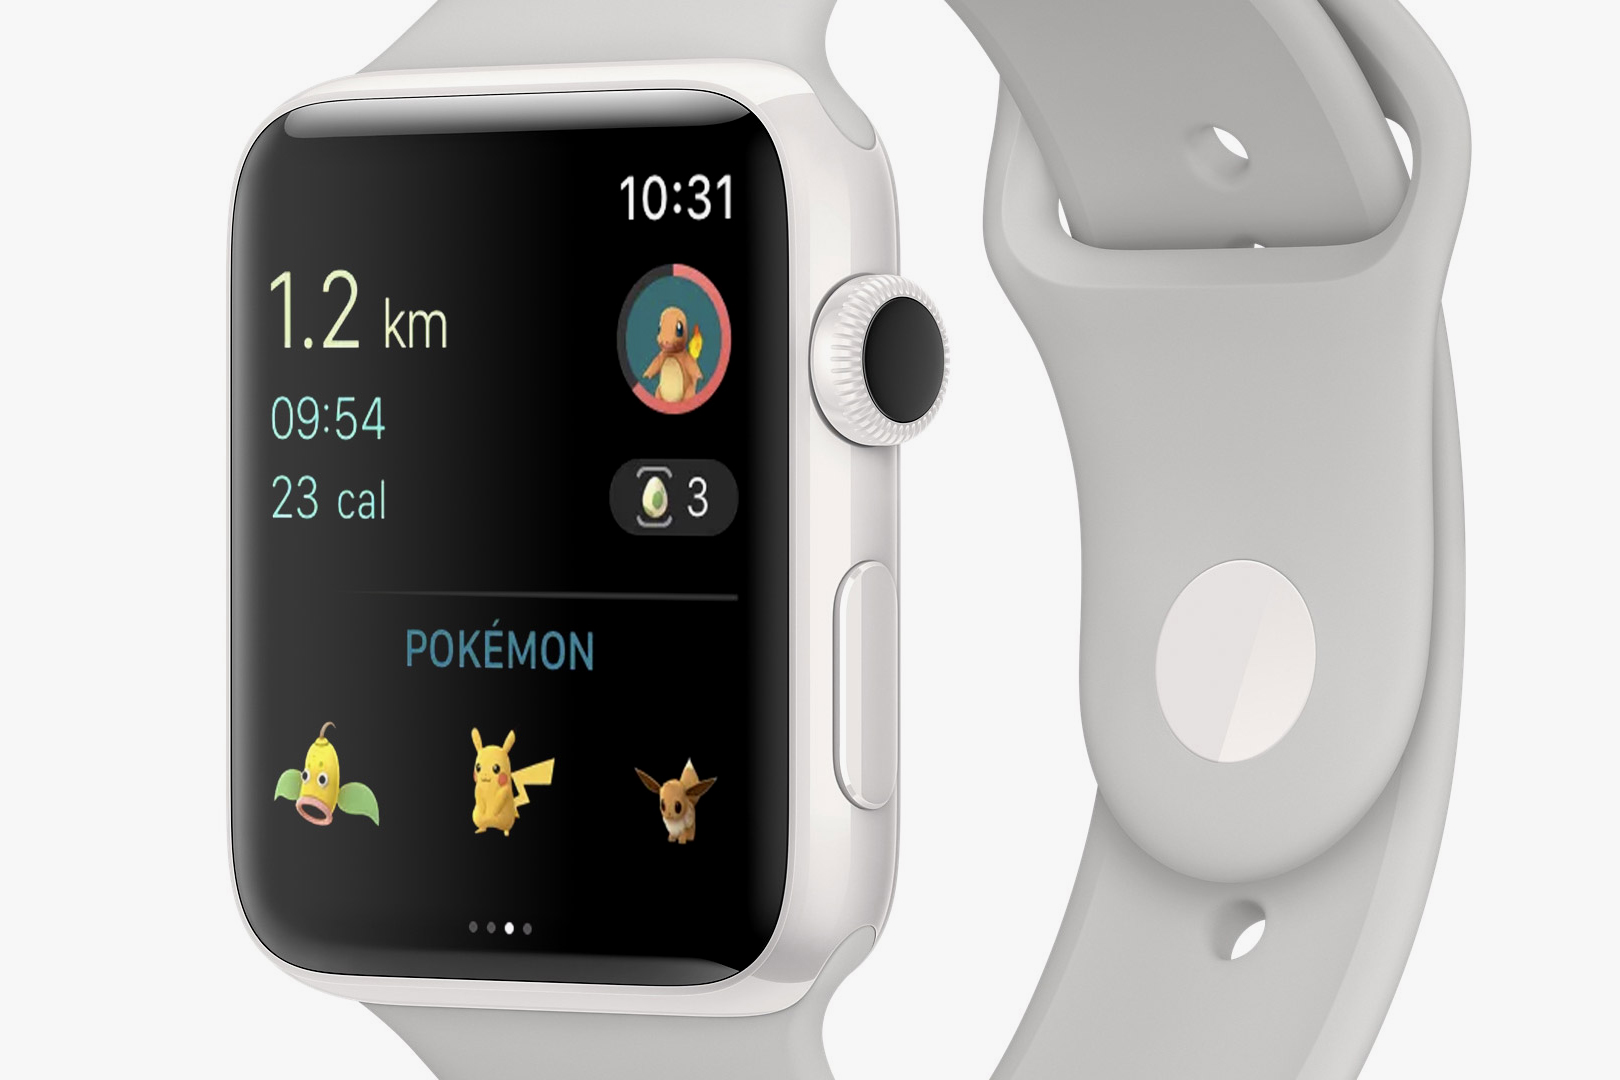 Apple Watch Pokemon GO iTunes watchOS